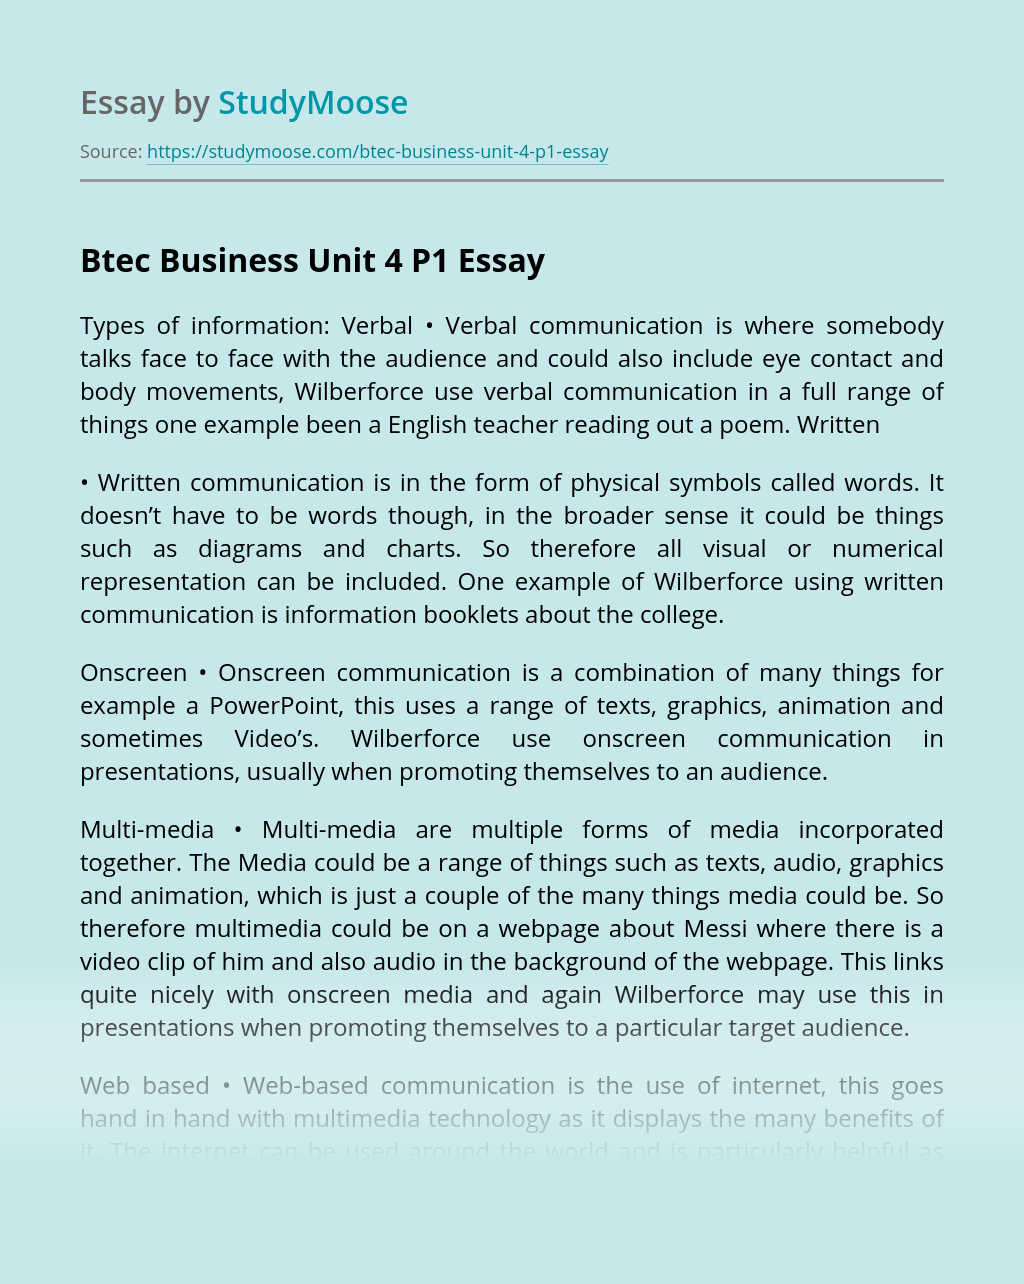 Btec Business Unit 4 P1